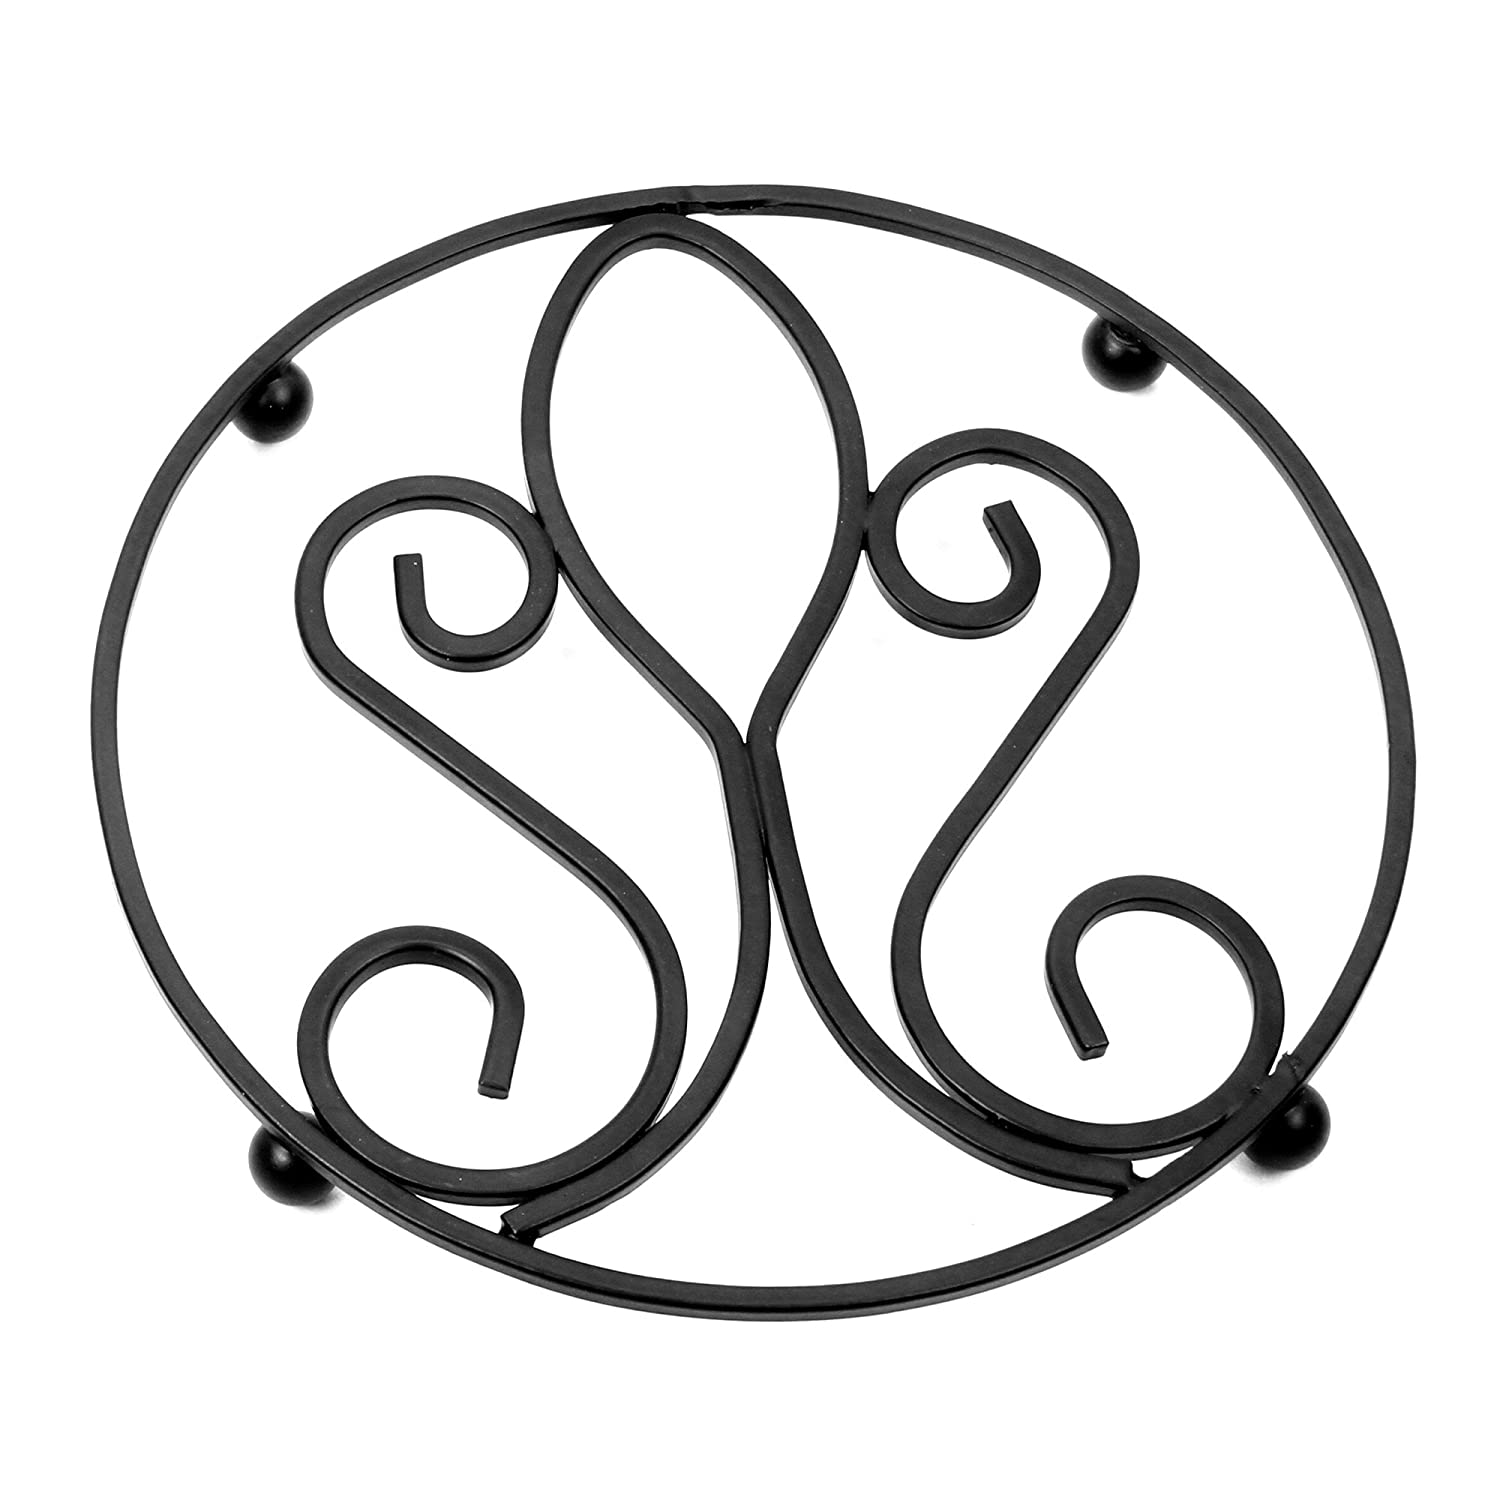 Hosley's Wrought Iron Trivet- Assorted Pattern. 7.2 Diameter. Raised base protects your counters, tables from watermarks and scratches. Ideal gift for house warming, weddings O4. HG Global